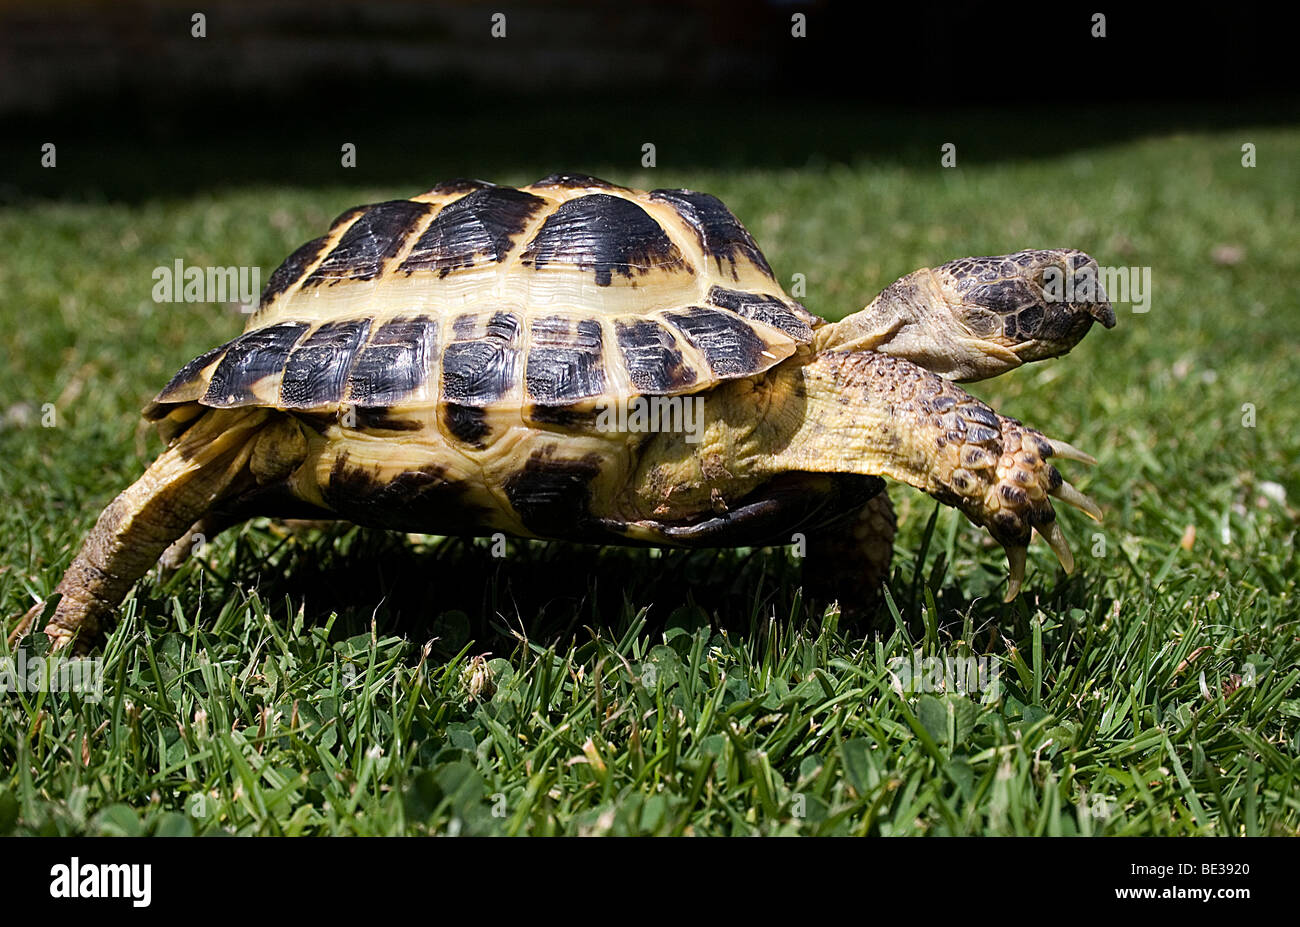 small tortoise crawling in grass - Stock Image